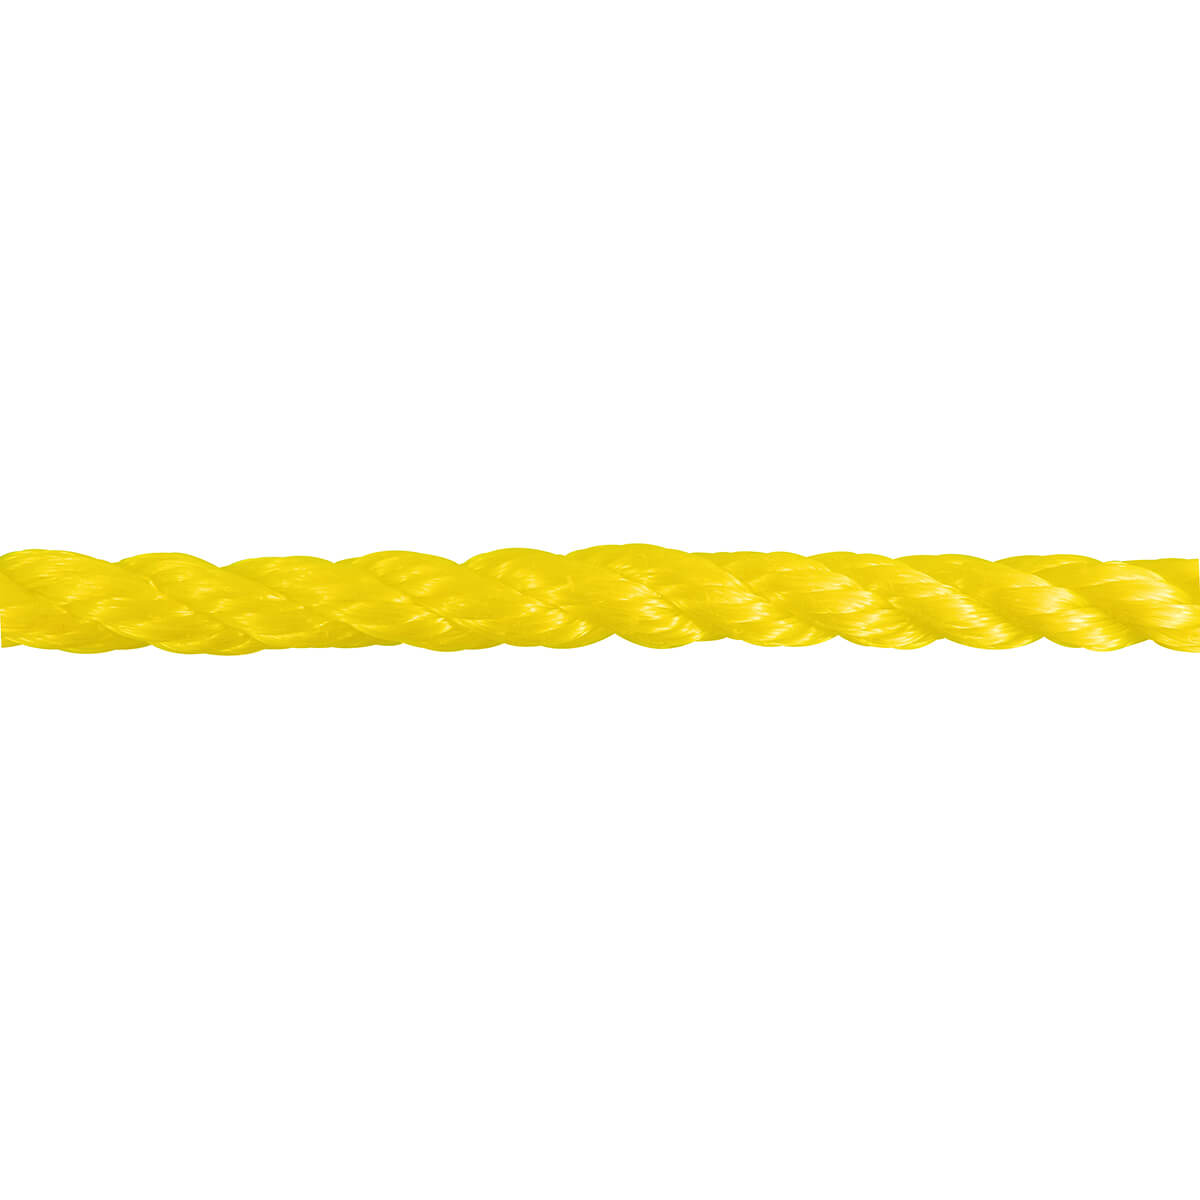 "Polypropylene Twisted Rope - Yellow - 1/2"" (price per foot)"